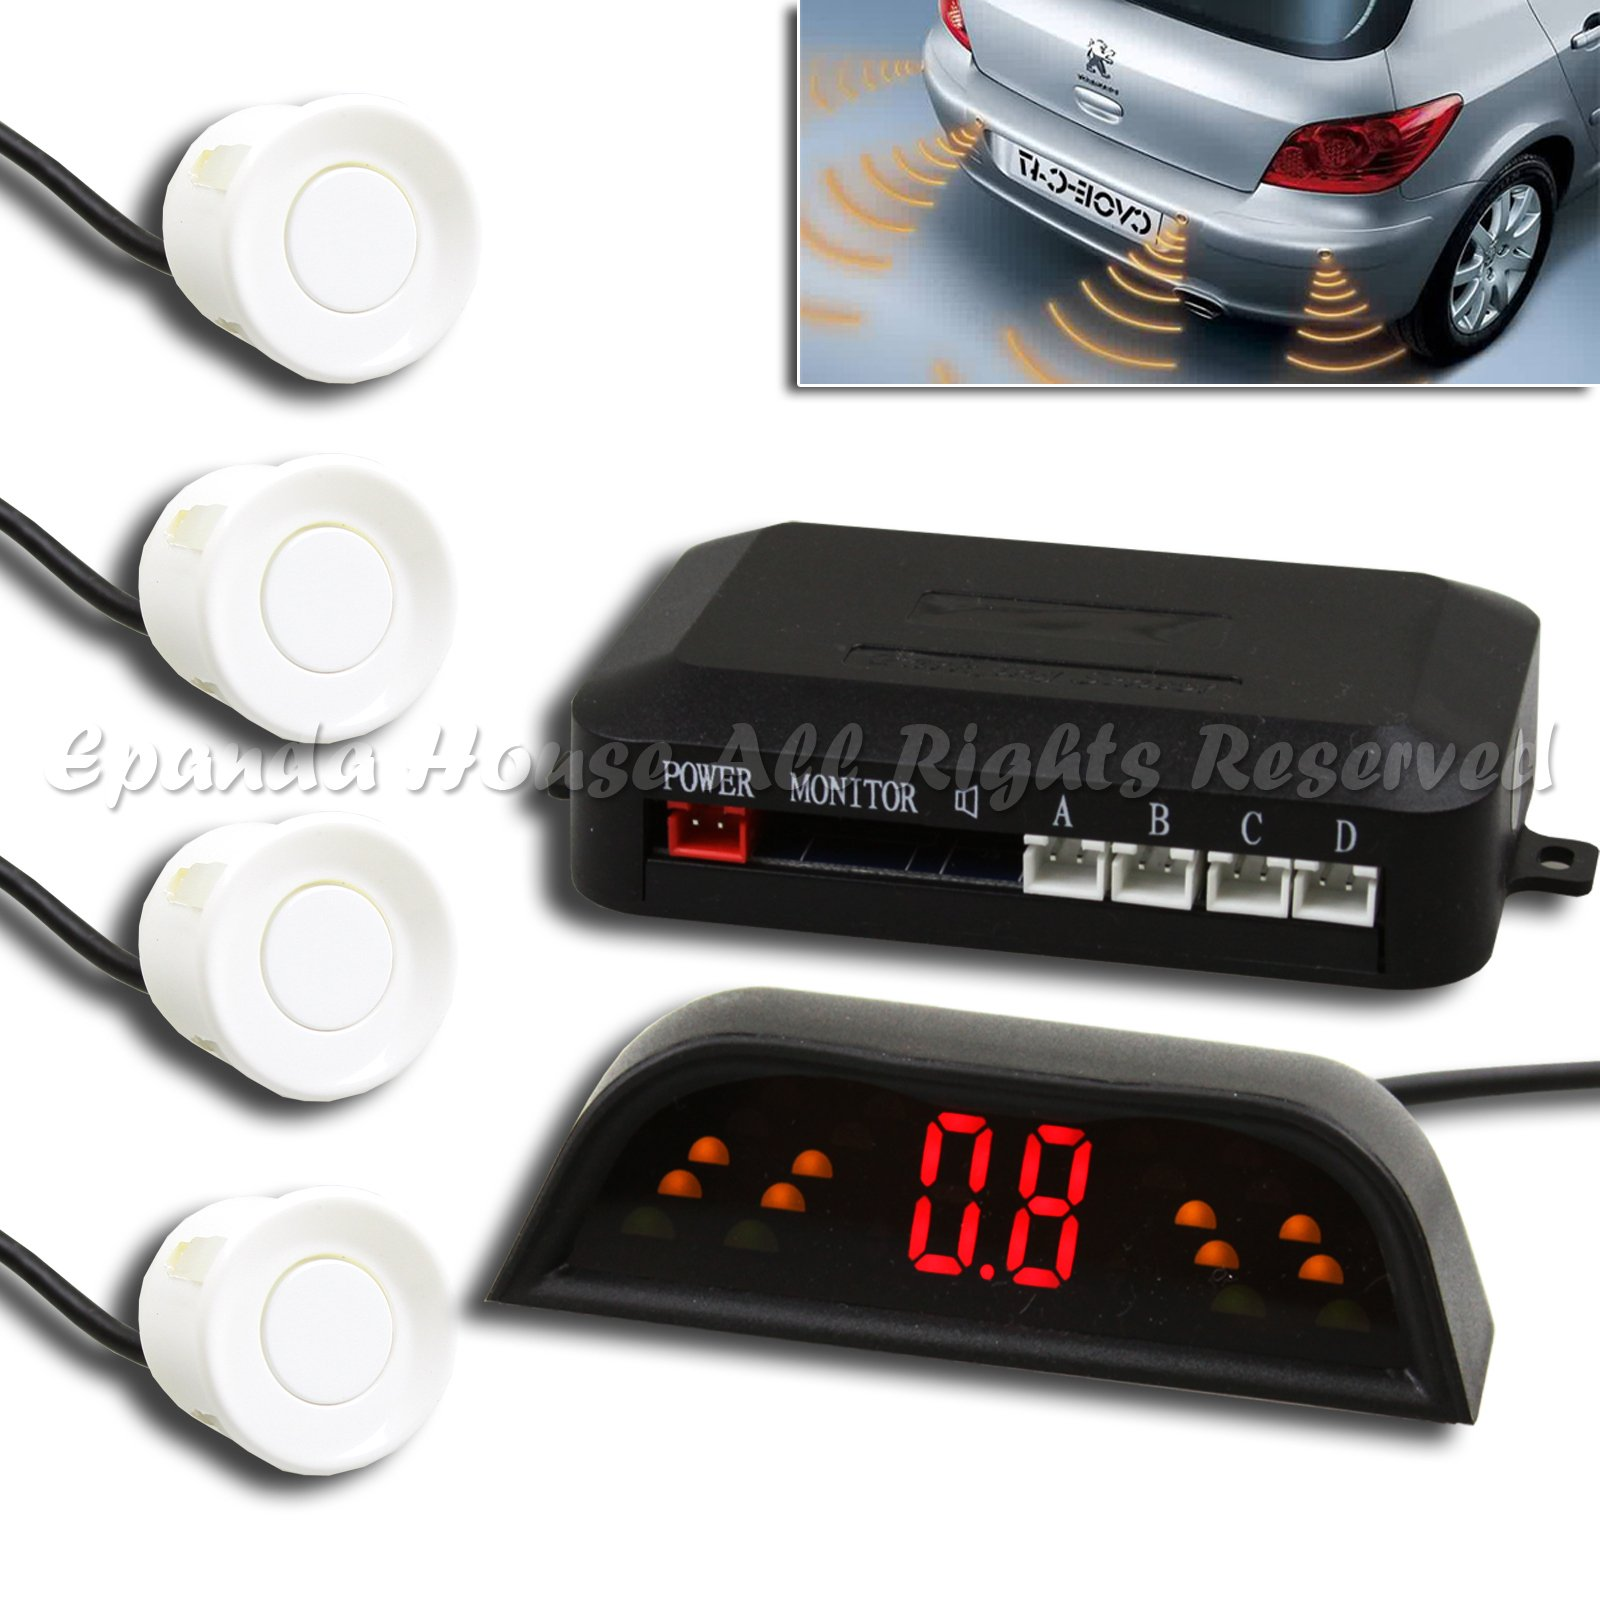 1X After Market Wireless Parking Backup Reverse Sensor Radar Kit 4Pc White Led by EpandaHouse (Image #1)